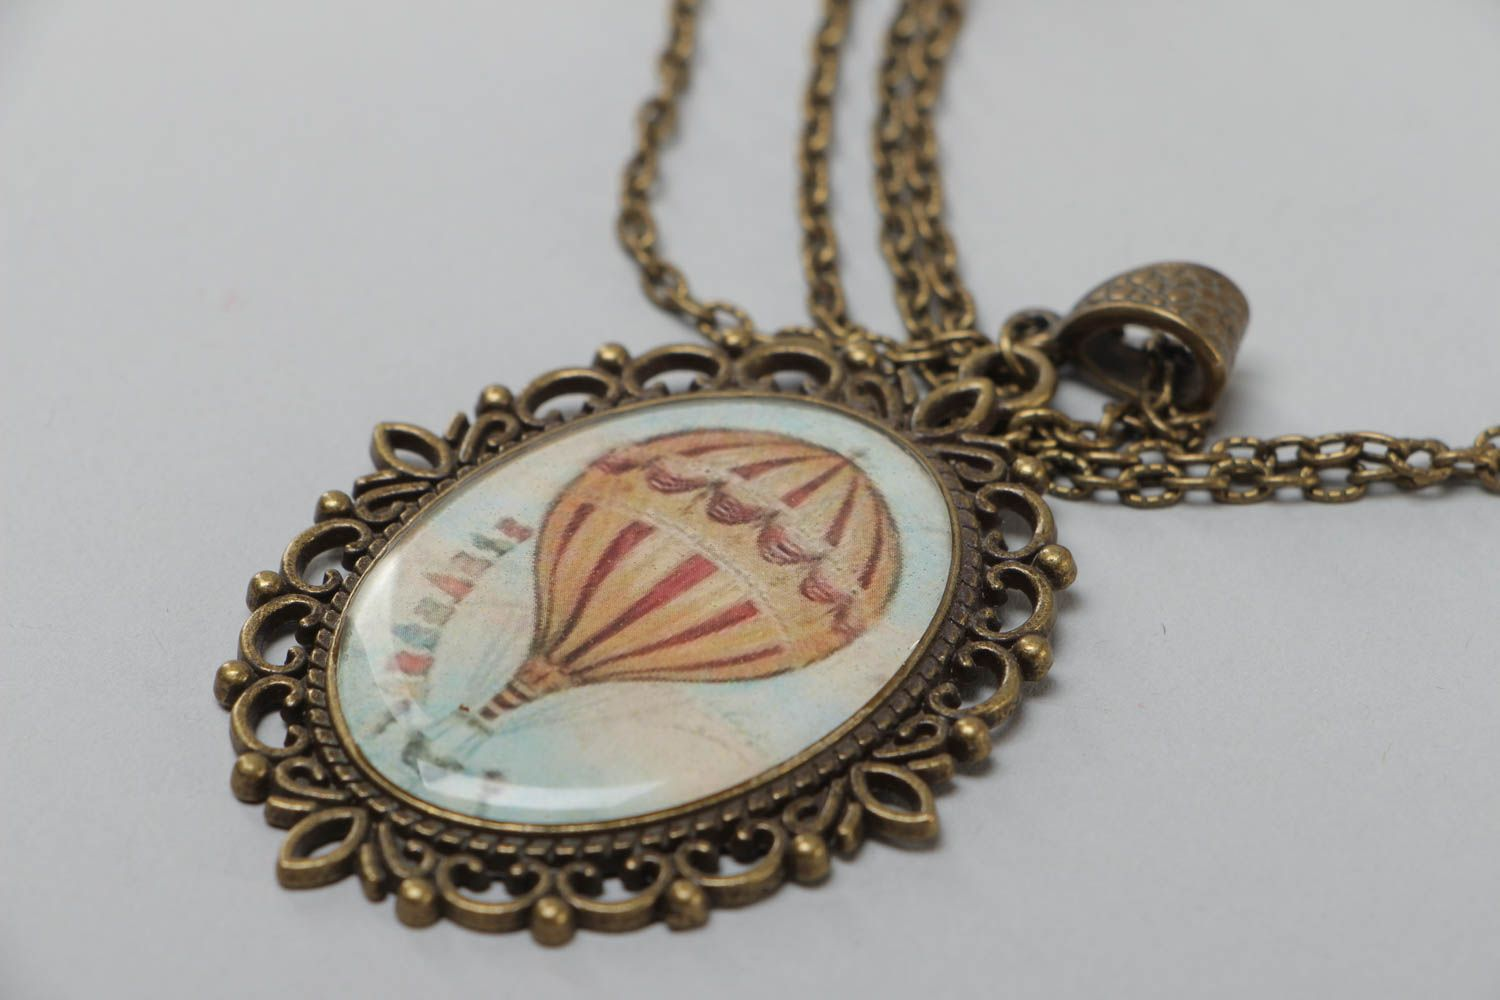 Handmade oval metal pendant with hot air balloon image on long chain 840 mm photo 3